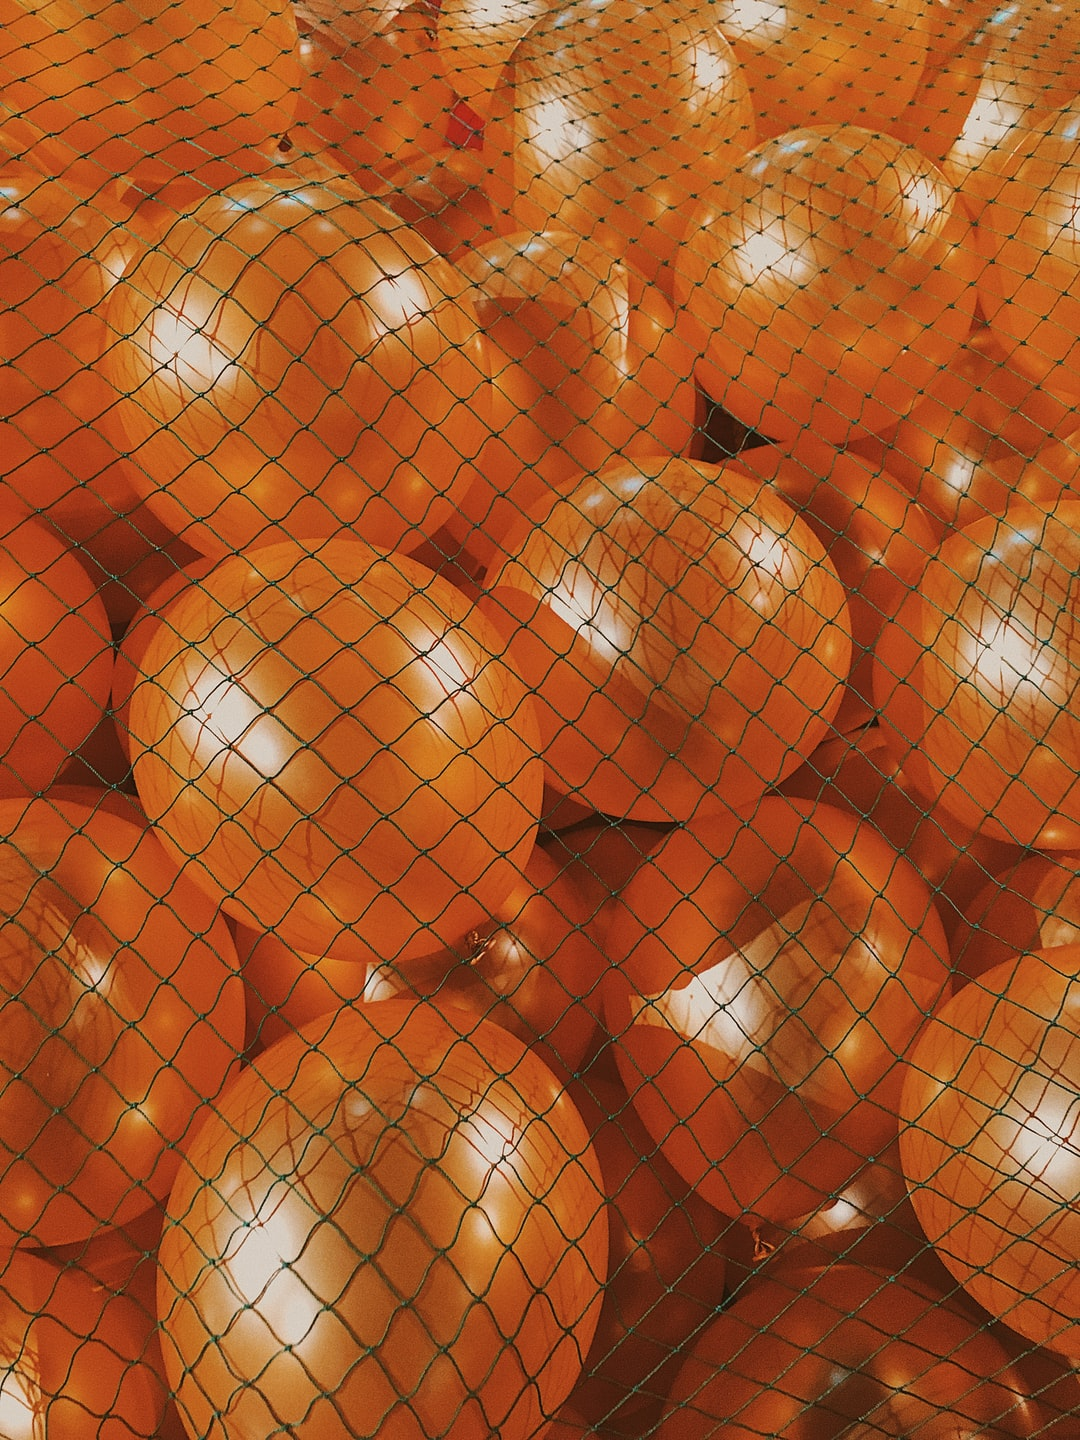 Orange ballons all together behind a green mesh.